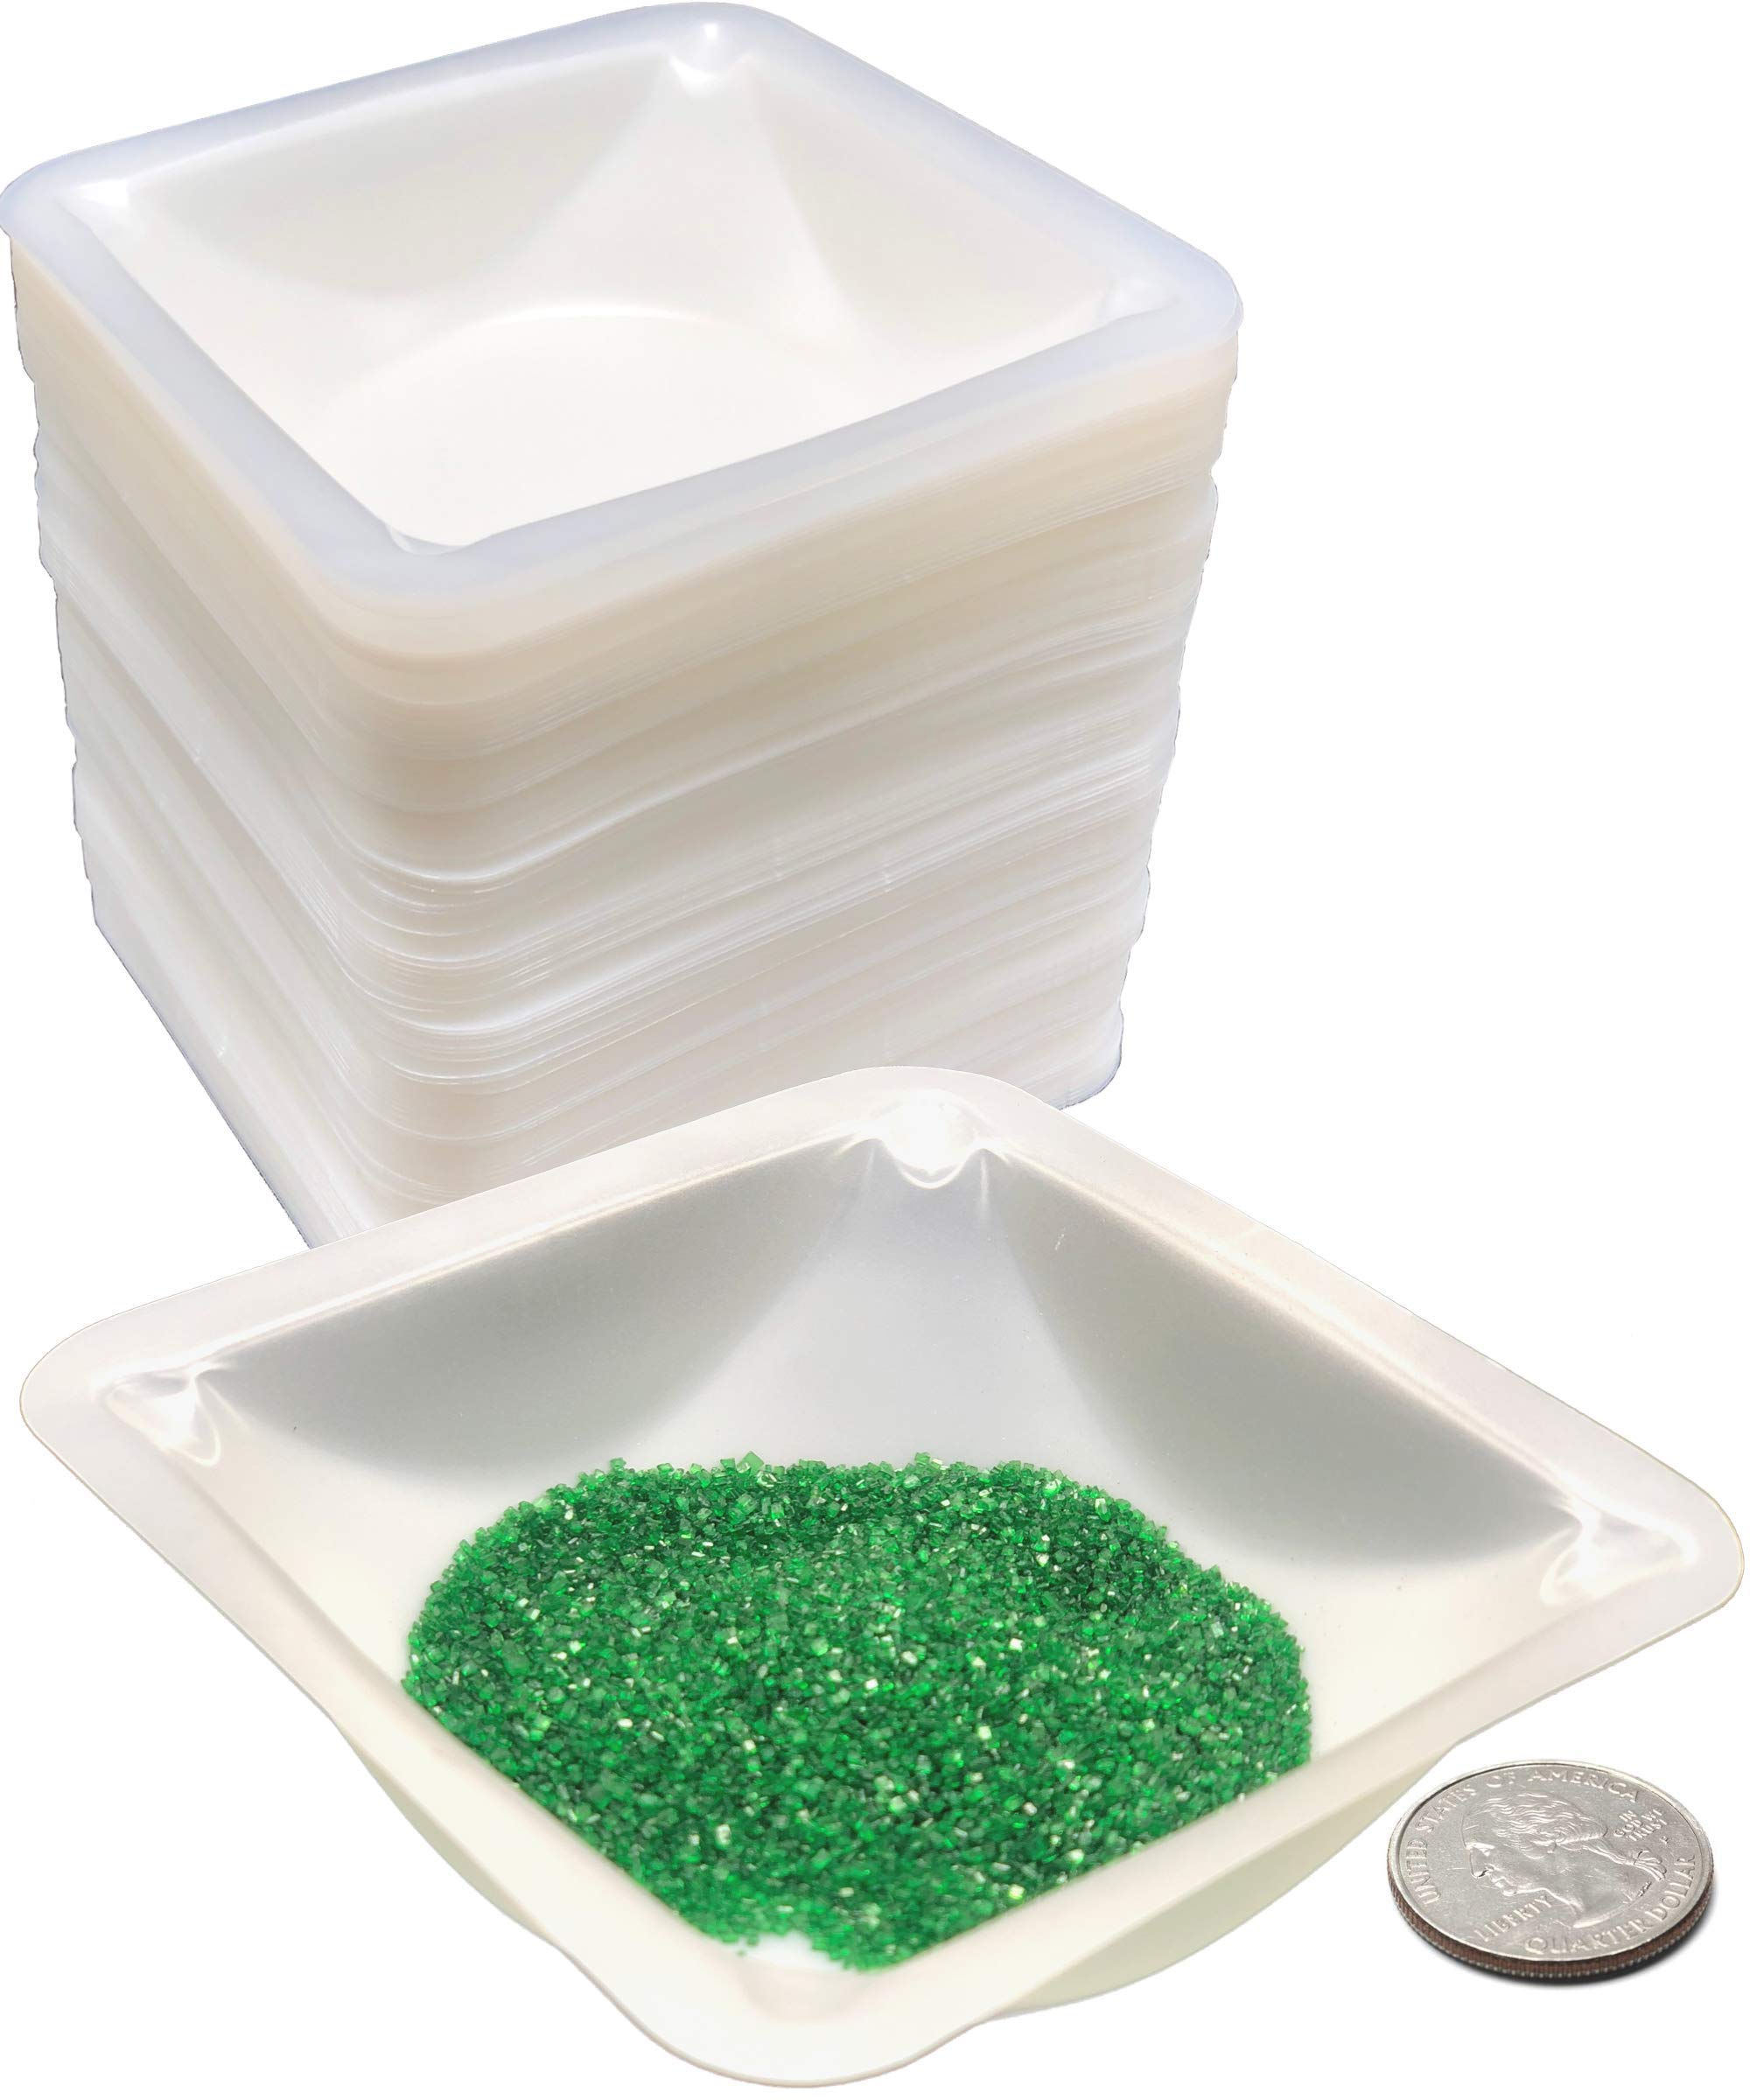 Pure Ponta Medium Weigh Boats | 125 Pack 100ml Plastic Square Weighing Dishes - Measure Powders & Liquids with Easy Pour Design | Medium Polystyrene Weigh Dish by Pure Ponta